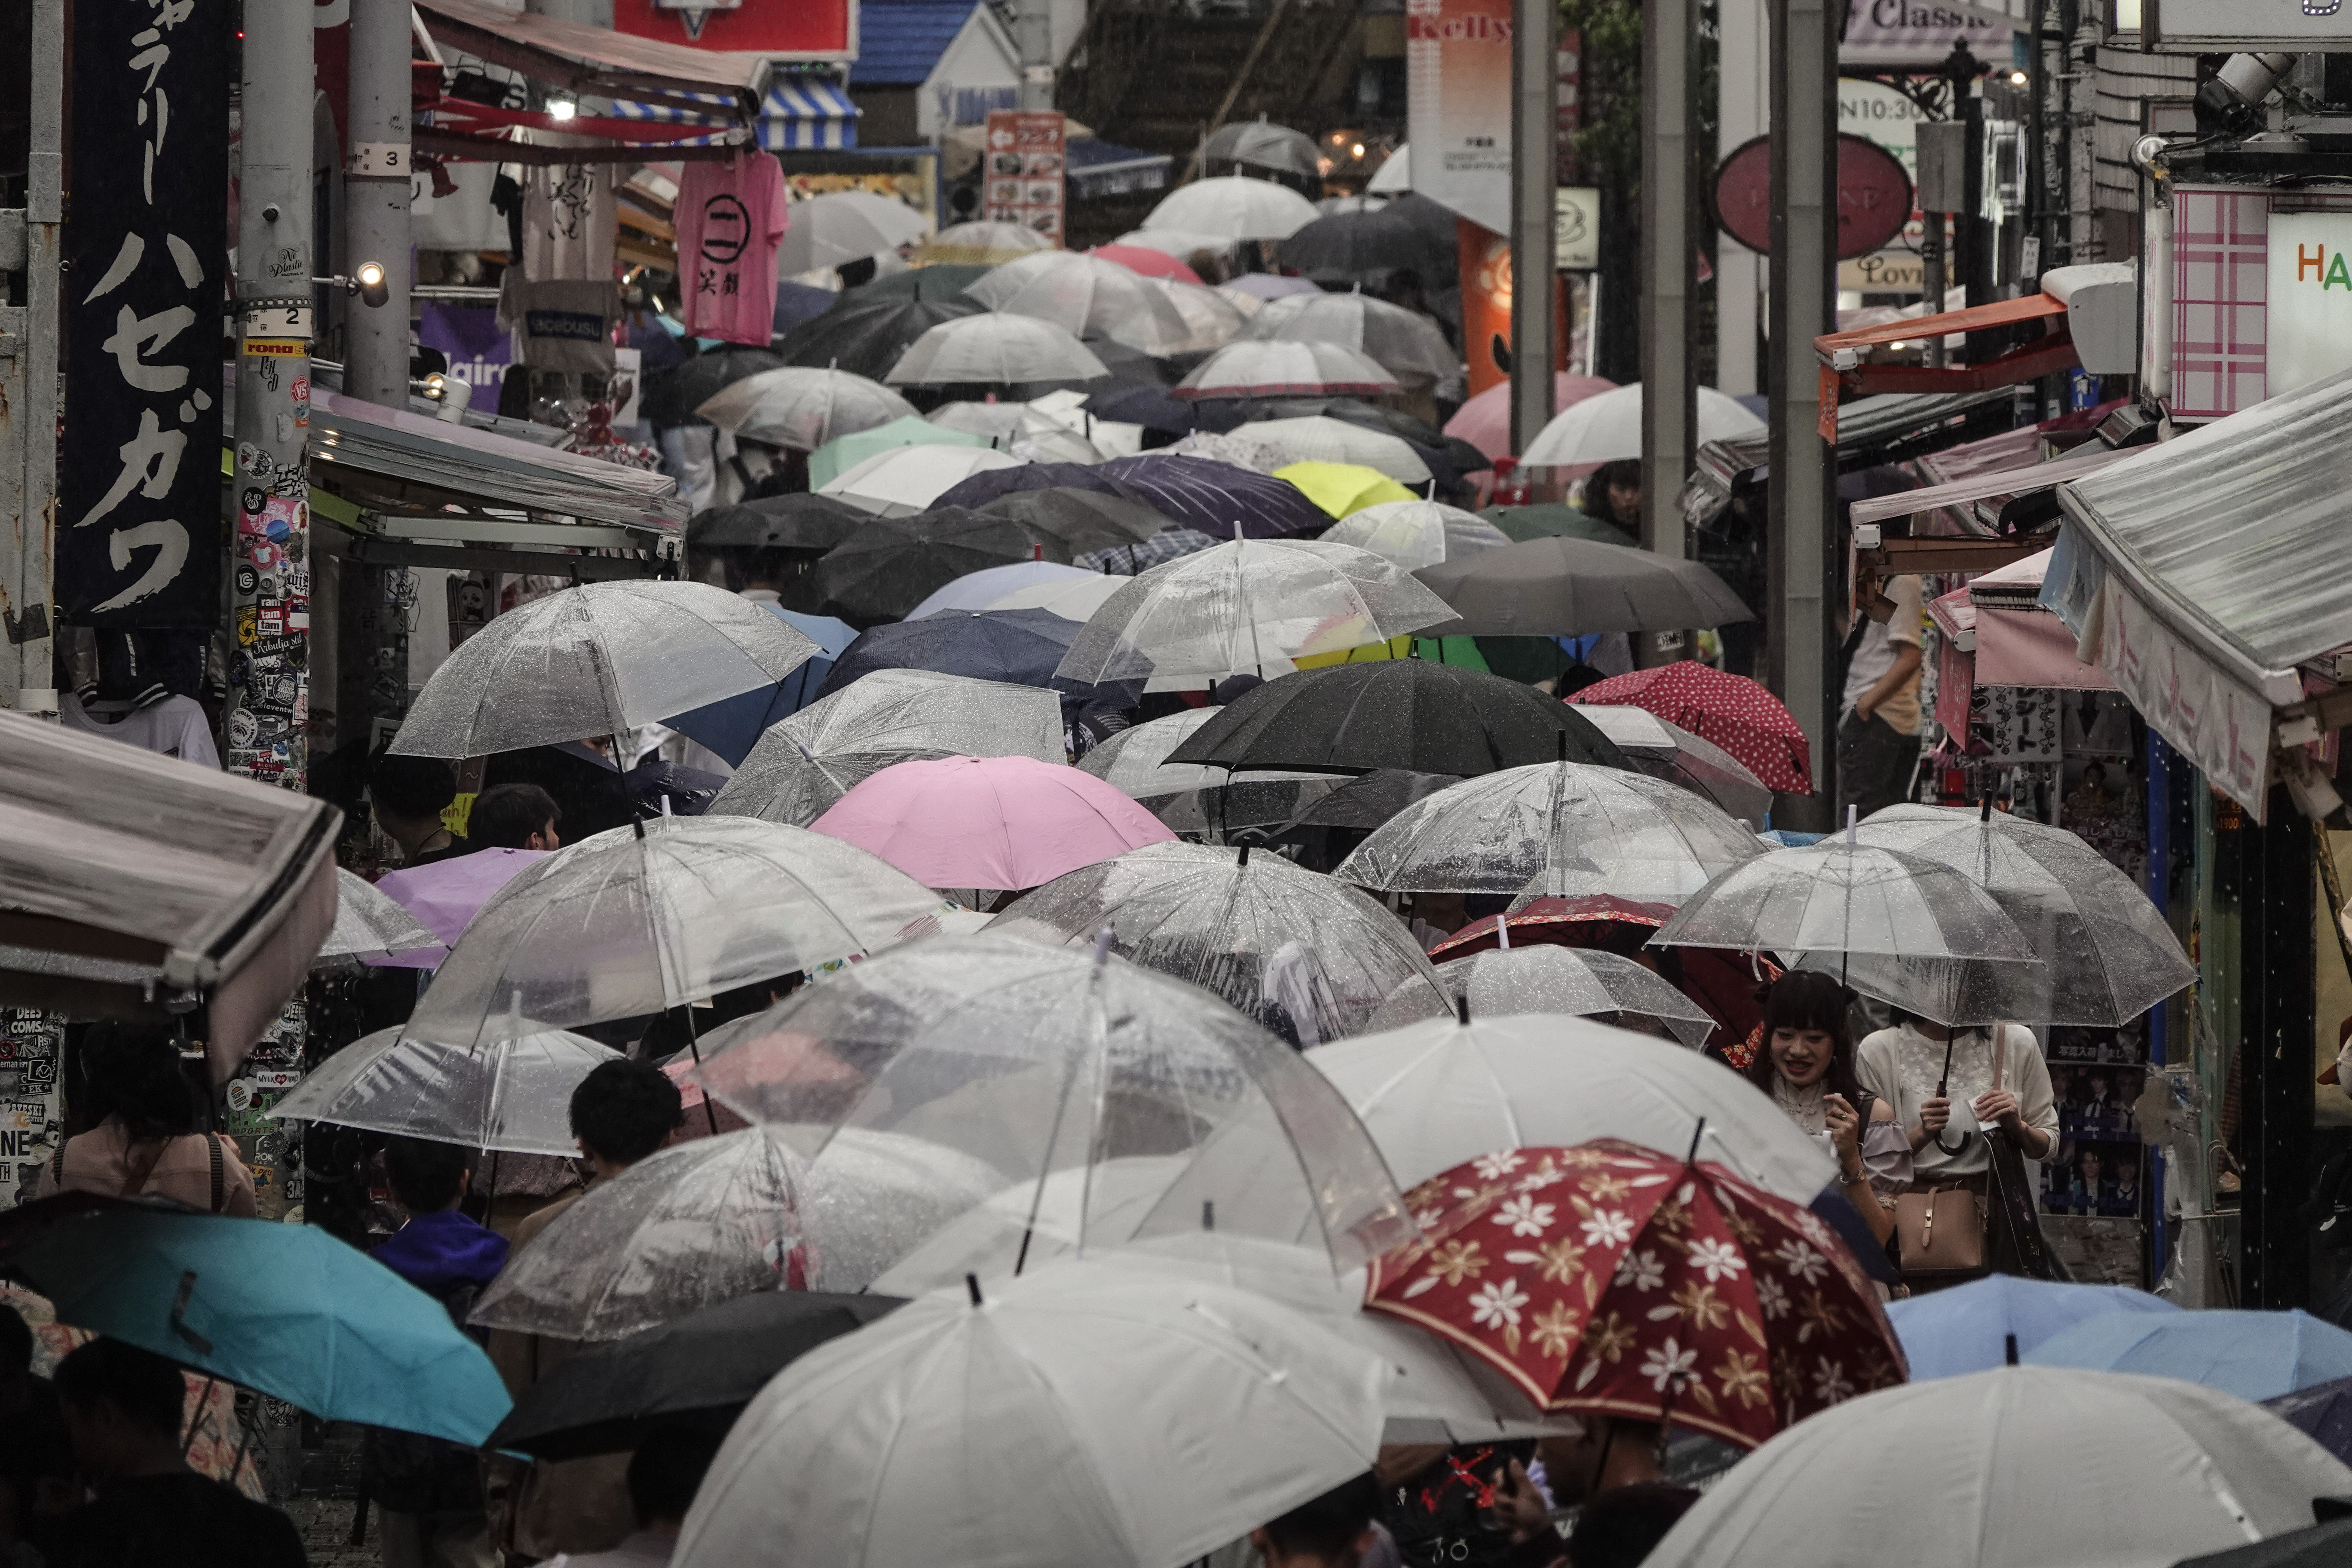 Shoppers with umbrellas walk along the Takeshita Street Friday, June 7, 2019, in the Harajuku district of Tokyo. Harajuku is one of the most popular shopping neighborhoods in Tokyo. (AP Photo/Jae C. Hong)